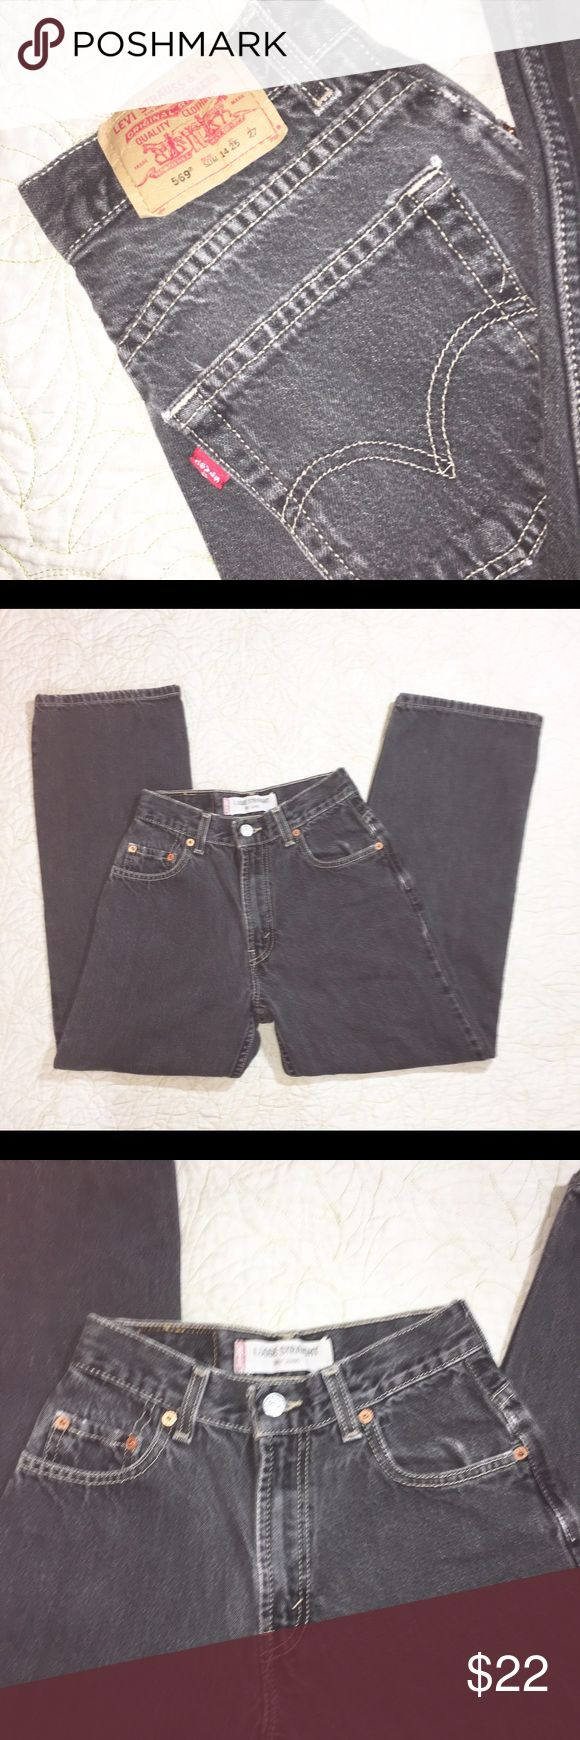 Levi's 569 Loose Straight Jeans Levi's 569 Loose Straight Jeans Levi's Jeans